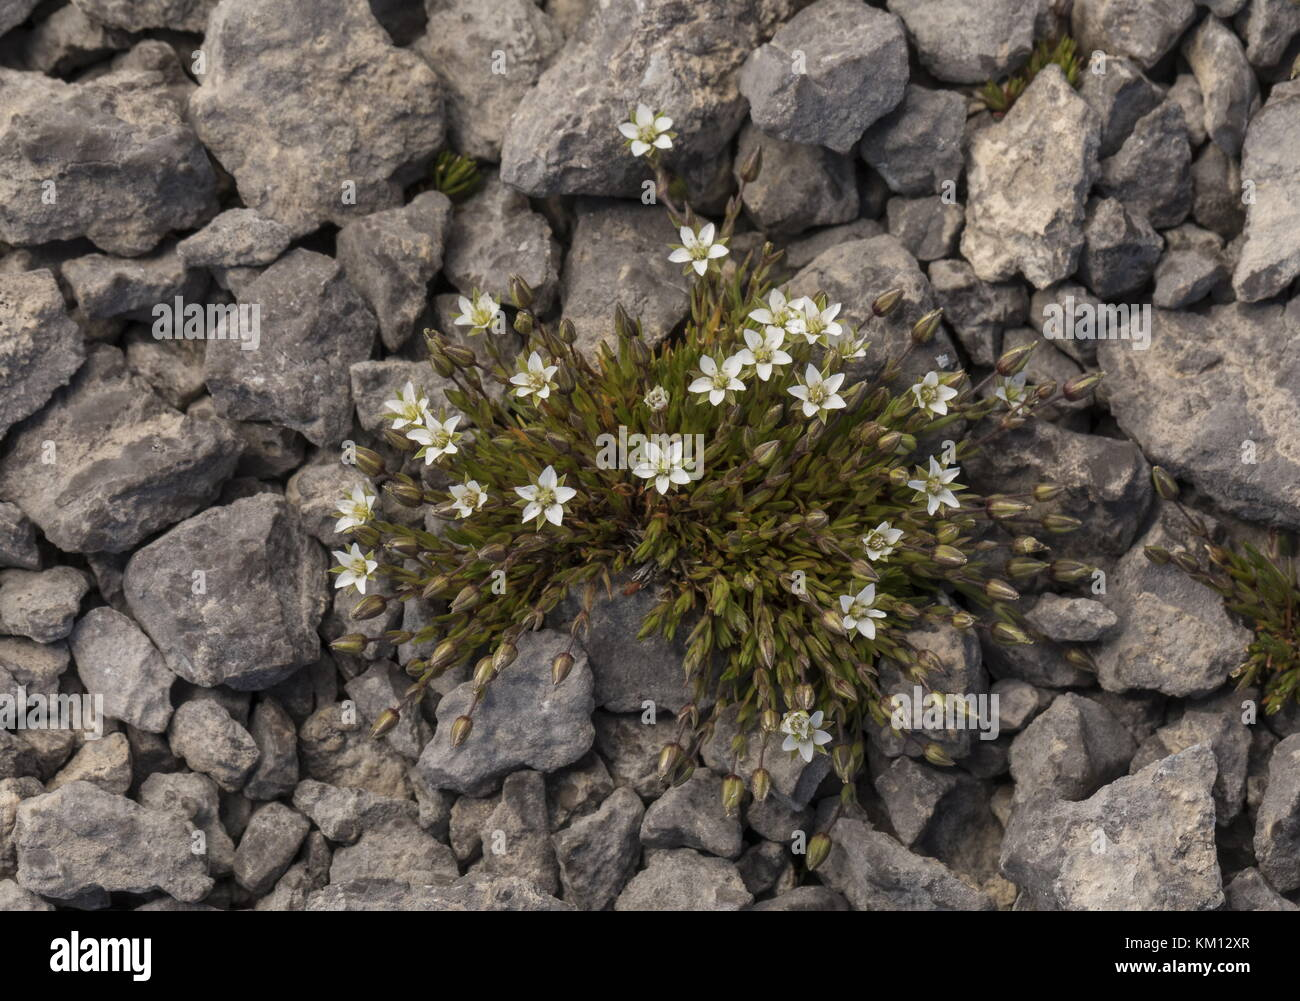 Reddish Sandwort, Minuartia rubella, in flower on limestone barrens, Newfoundland. - Stock Image